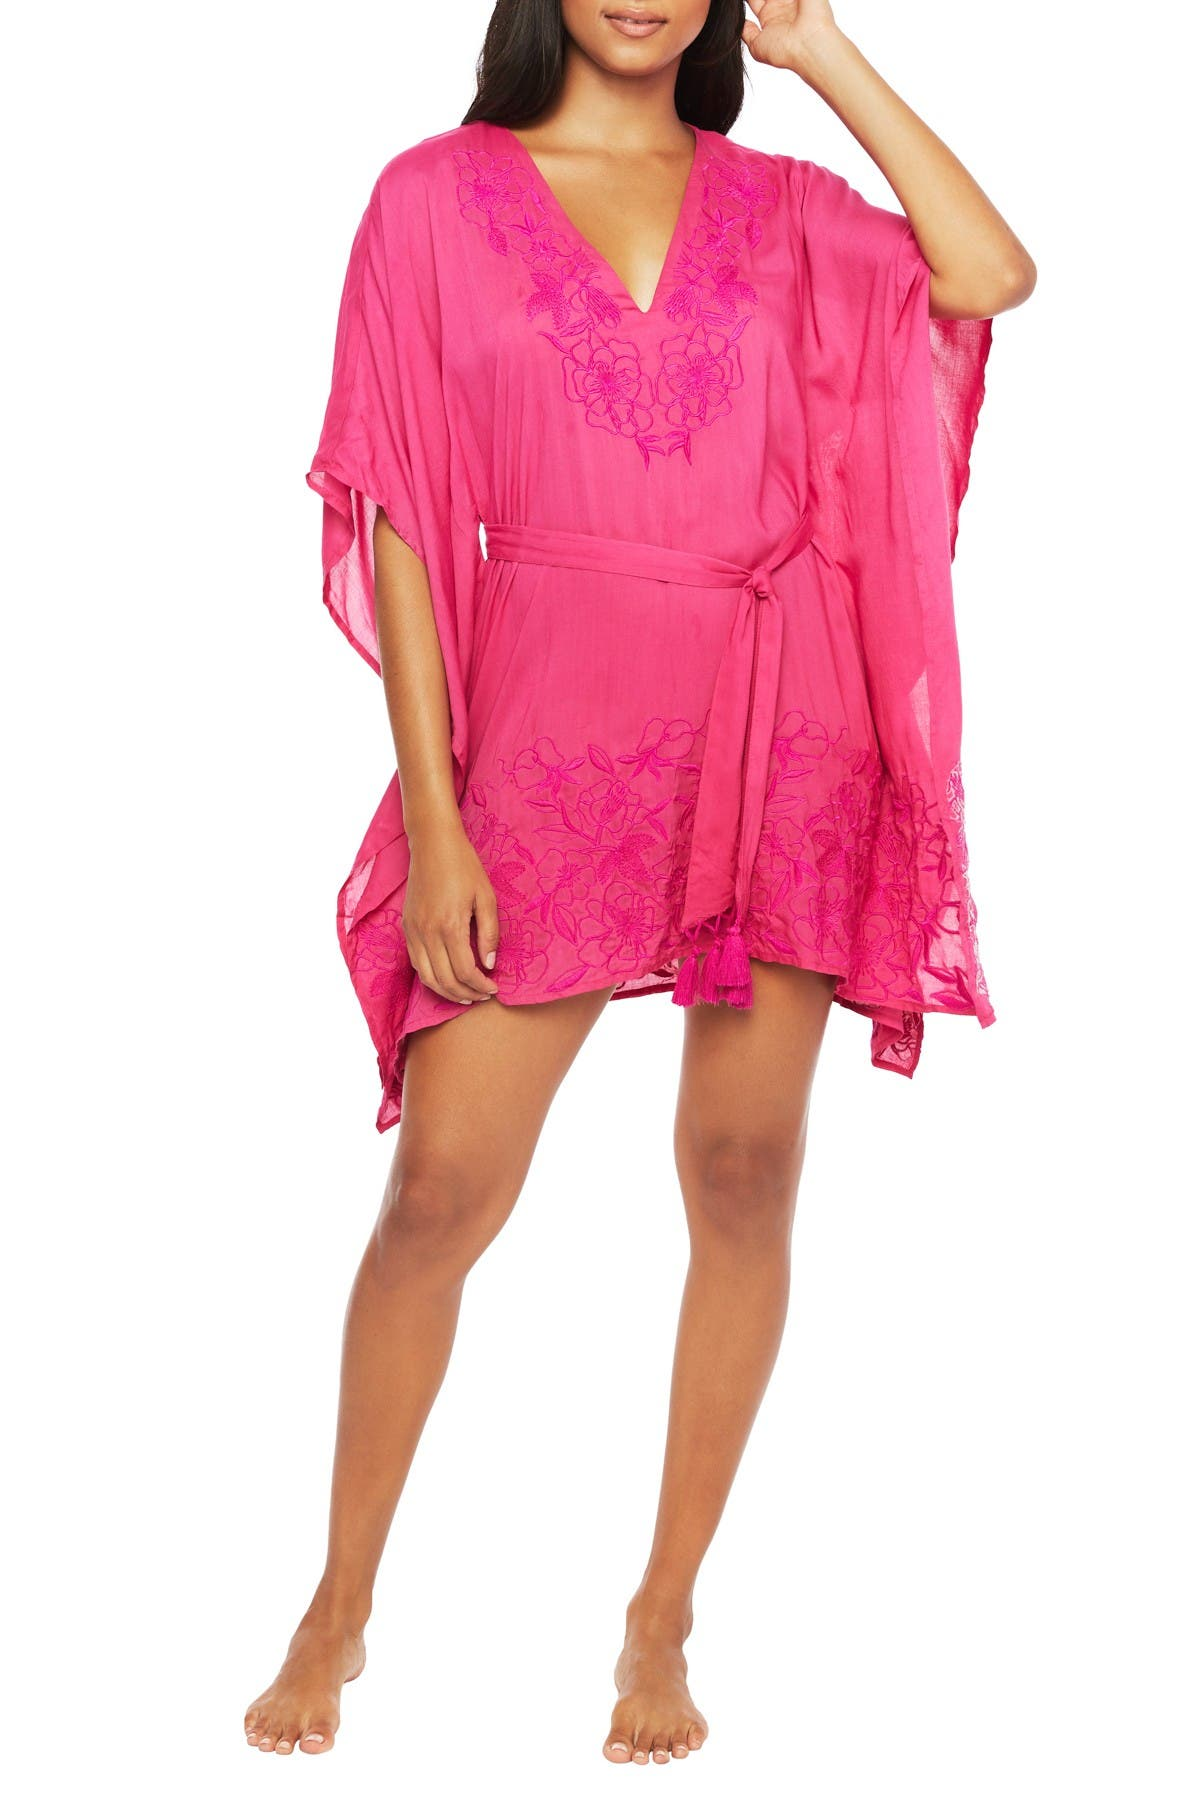 Image of Trina Turk Rio Embroidered Cover-Up Caftan